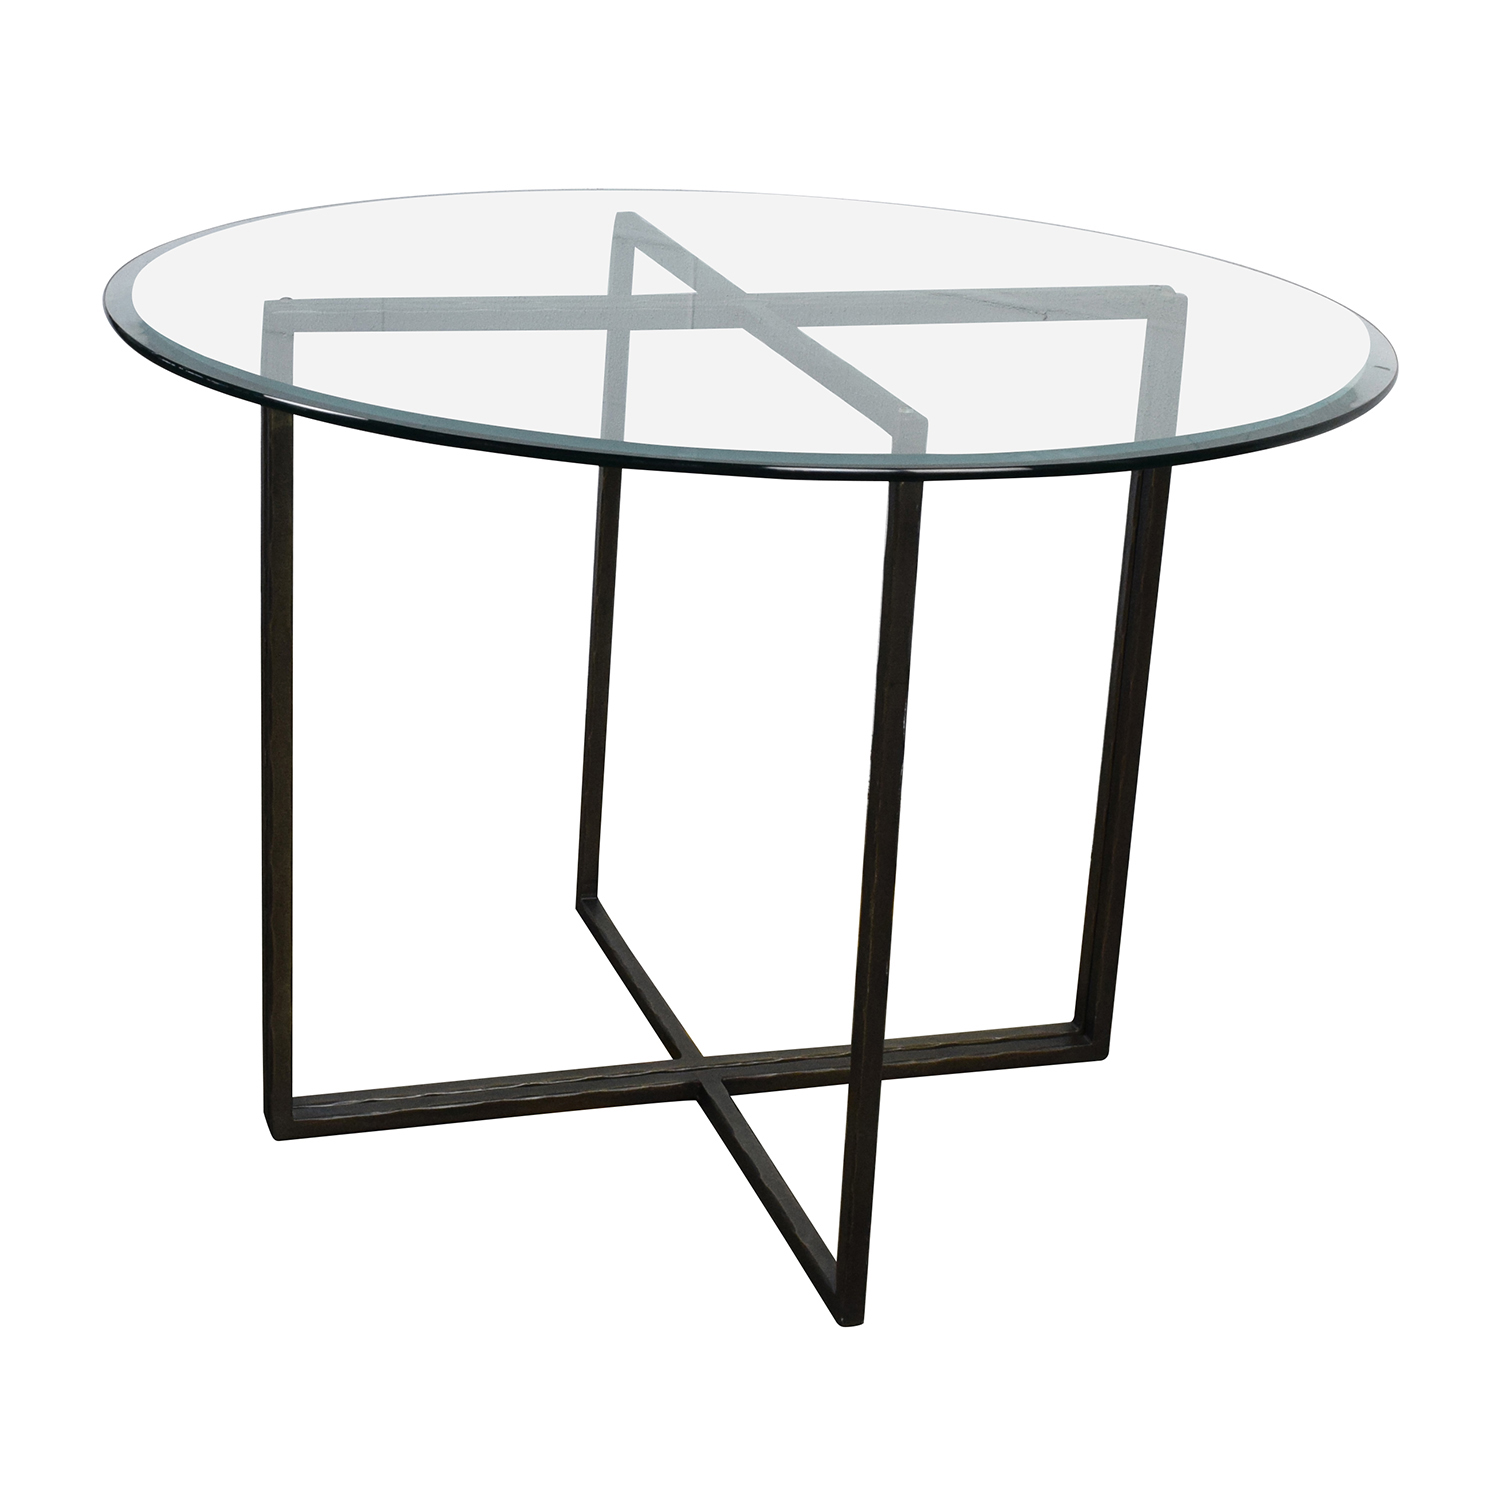 76 off crate and barrel crate barrel everitt glass top dining table tables. Black Bedroom Furniture Sets. Home Design Ideas